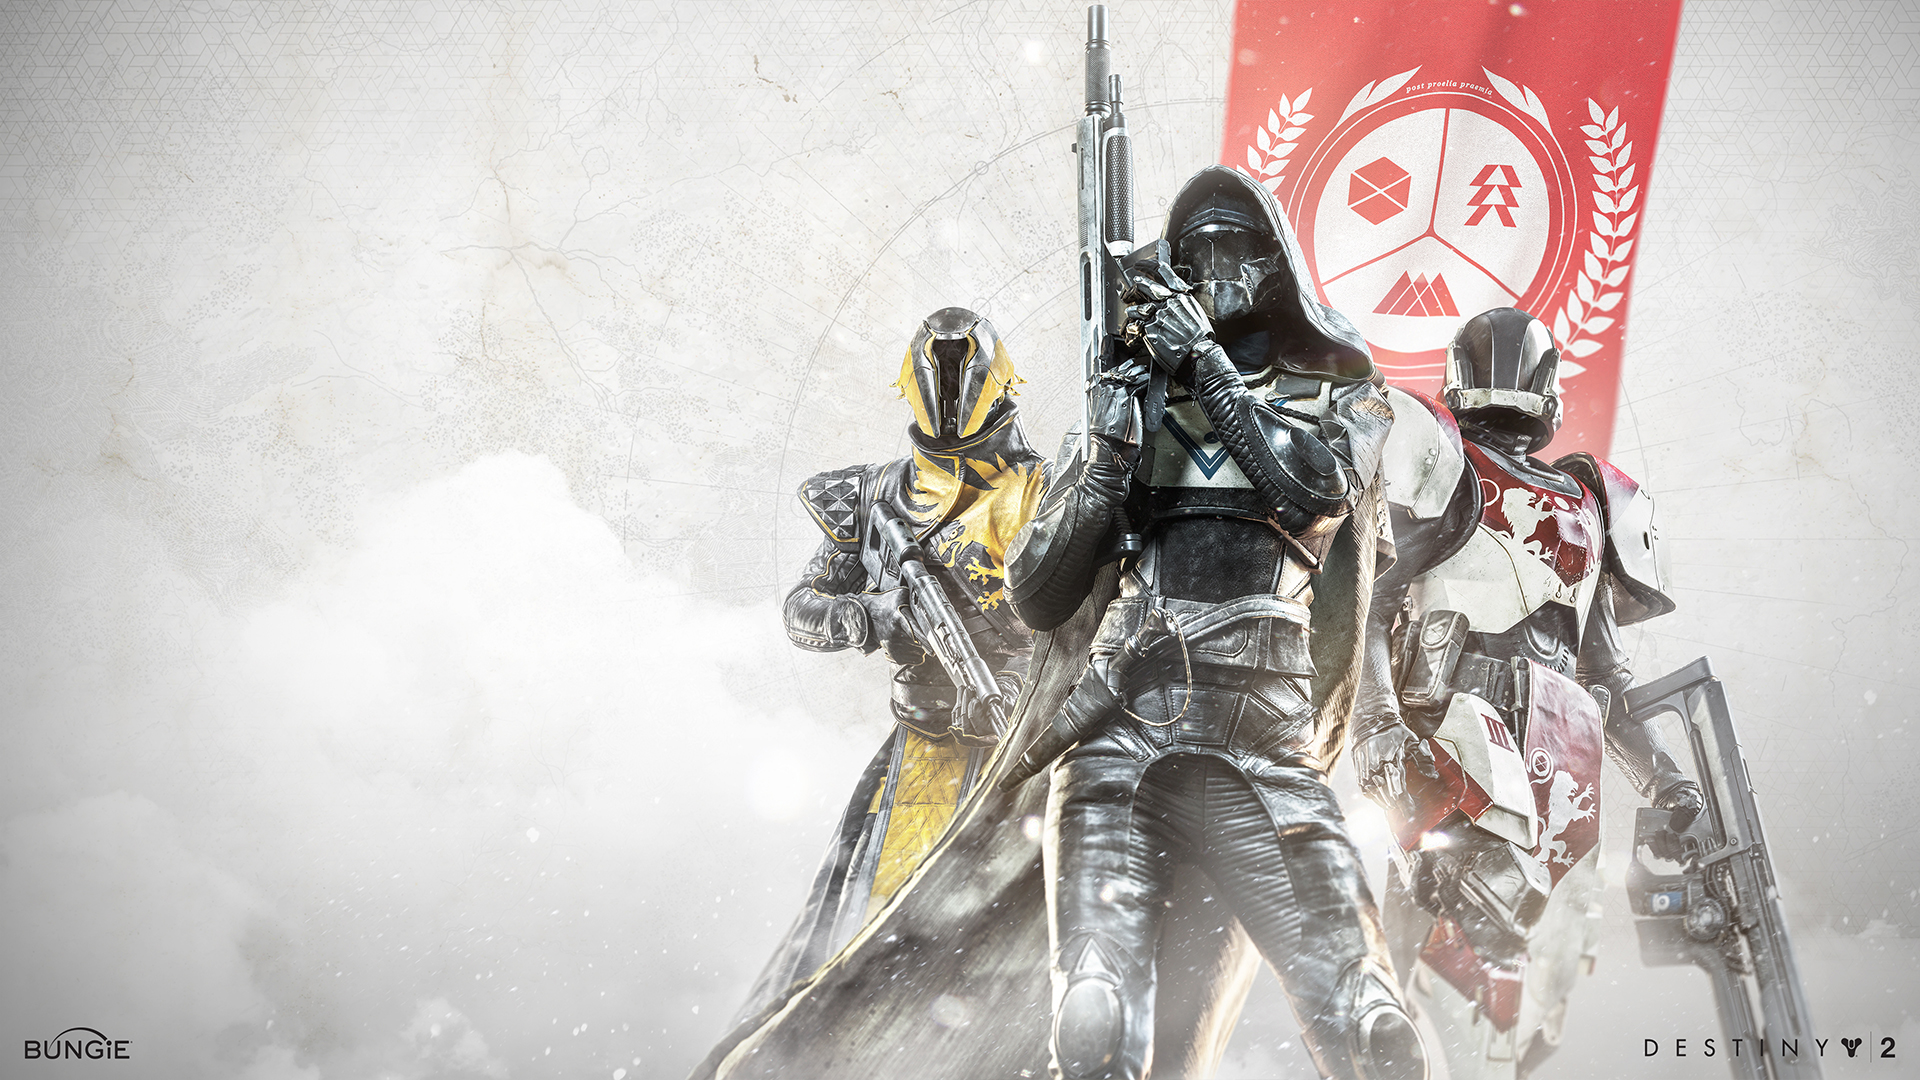 destiny 2 desktop wallpaper 61895